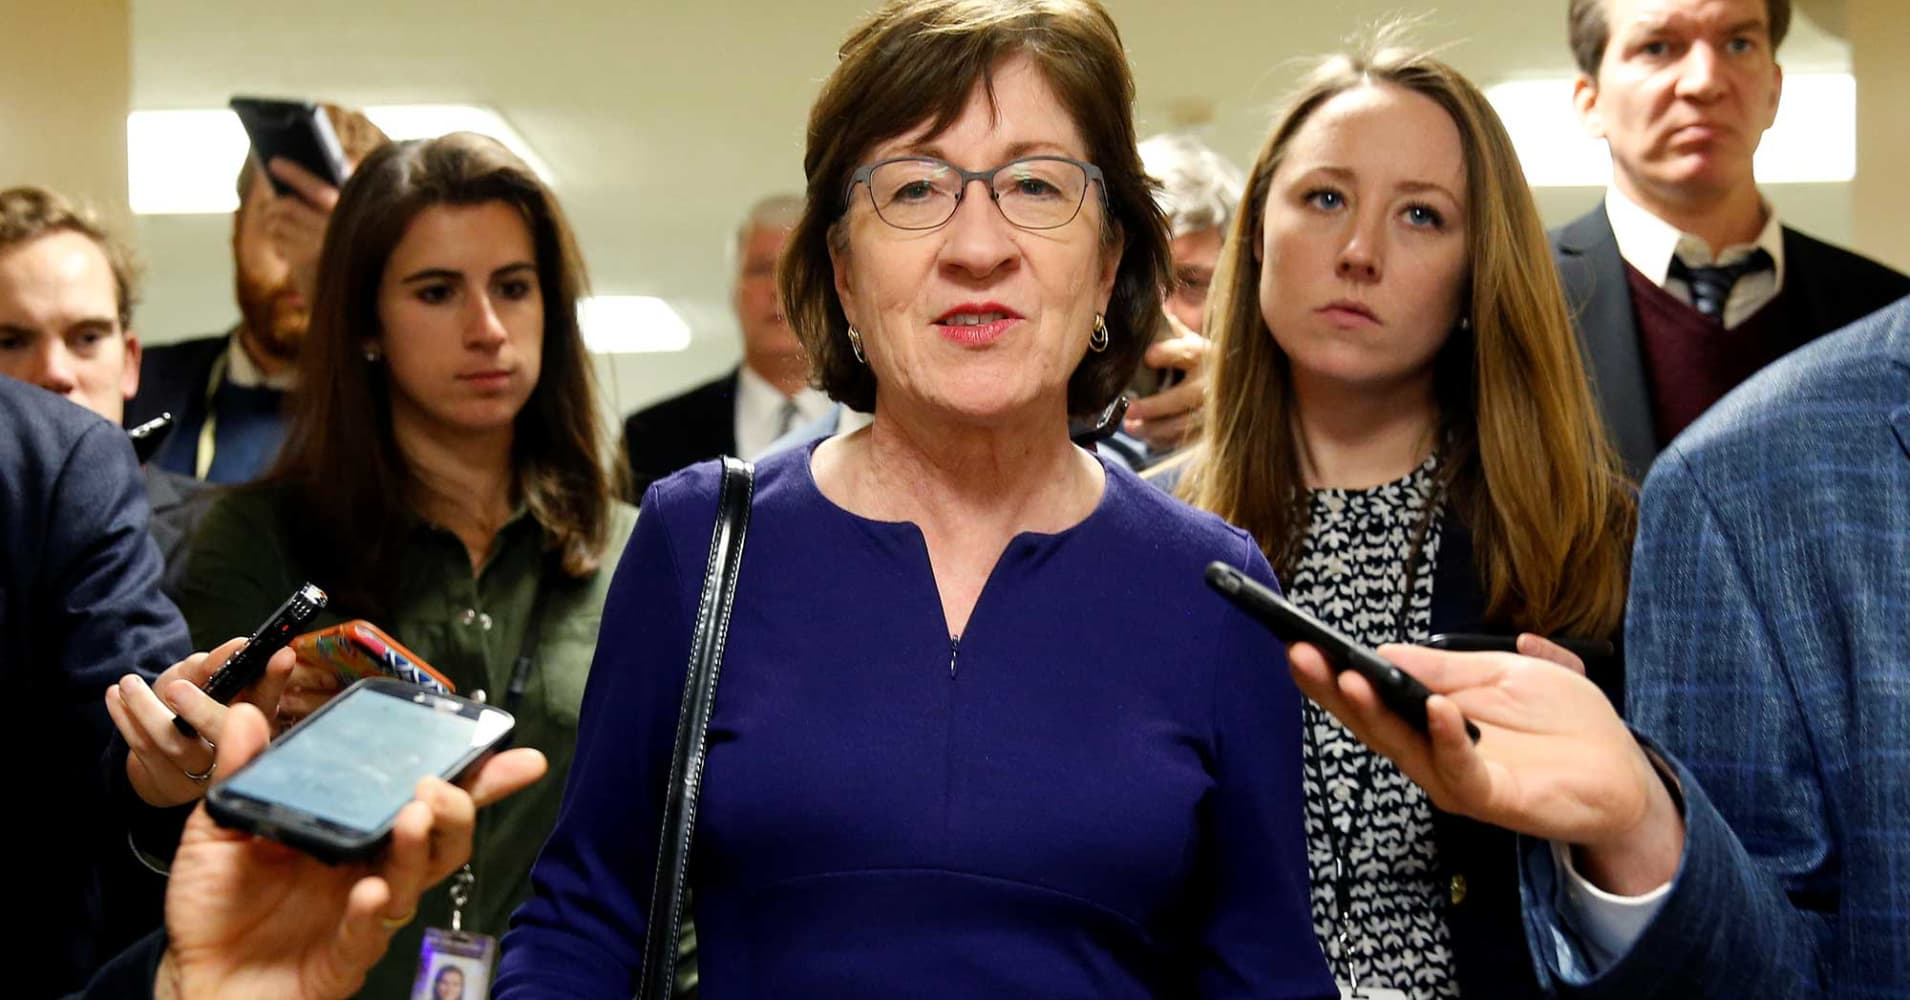 Sen. Susan Collins: If SCOTUS nominee Brett Kavanaugh lied, 'that would be disqualifying'